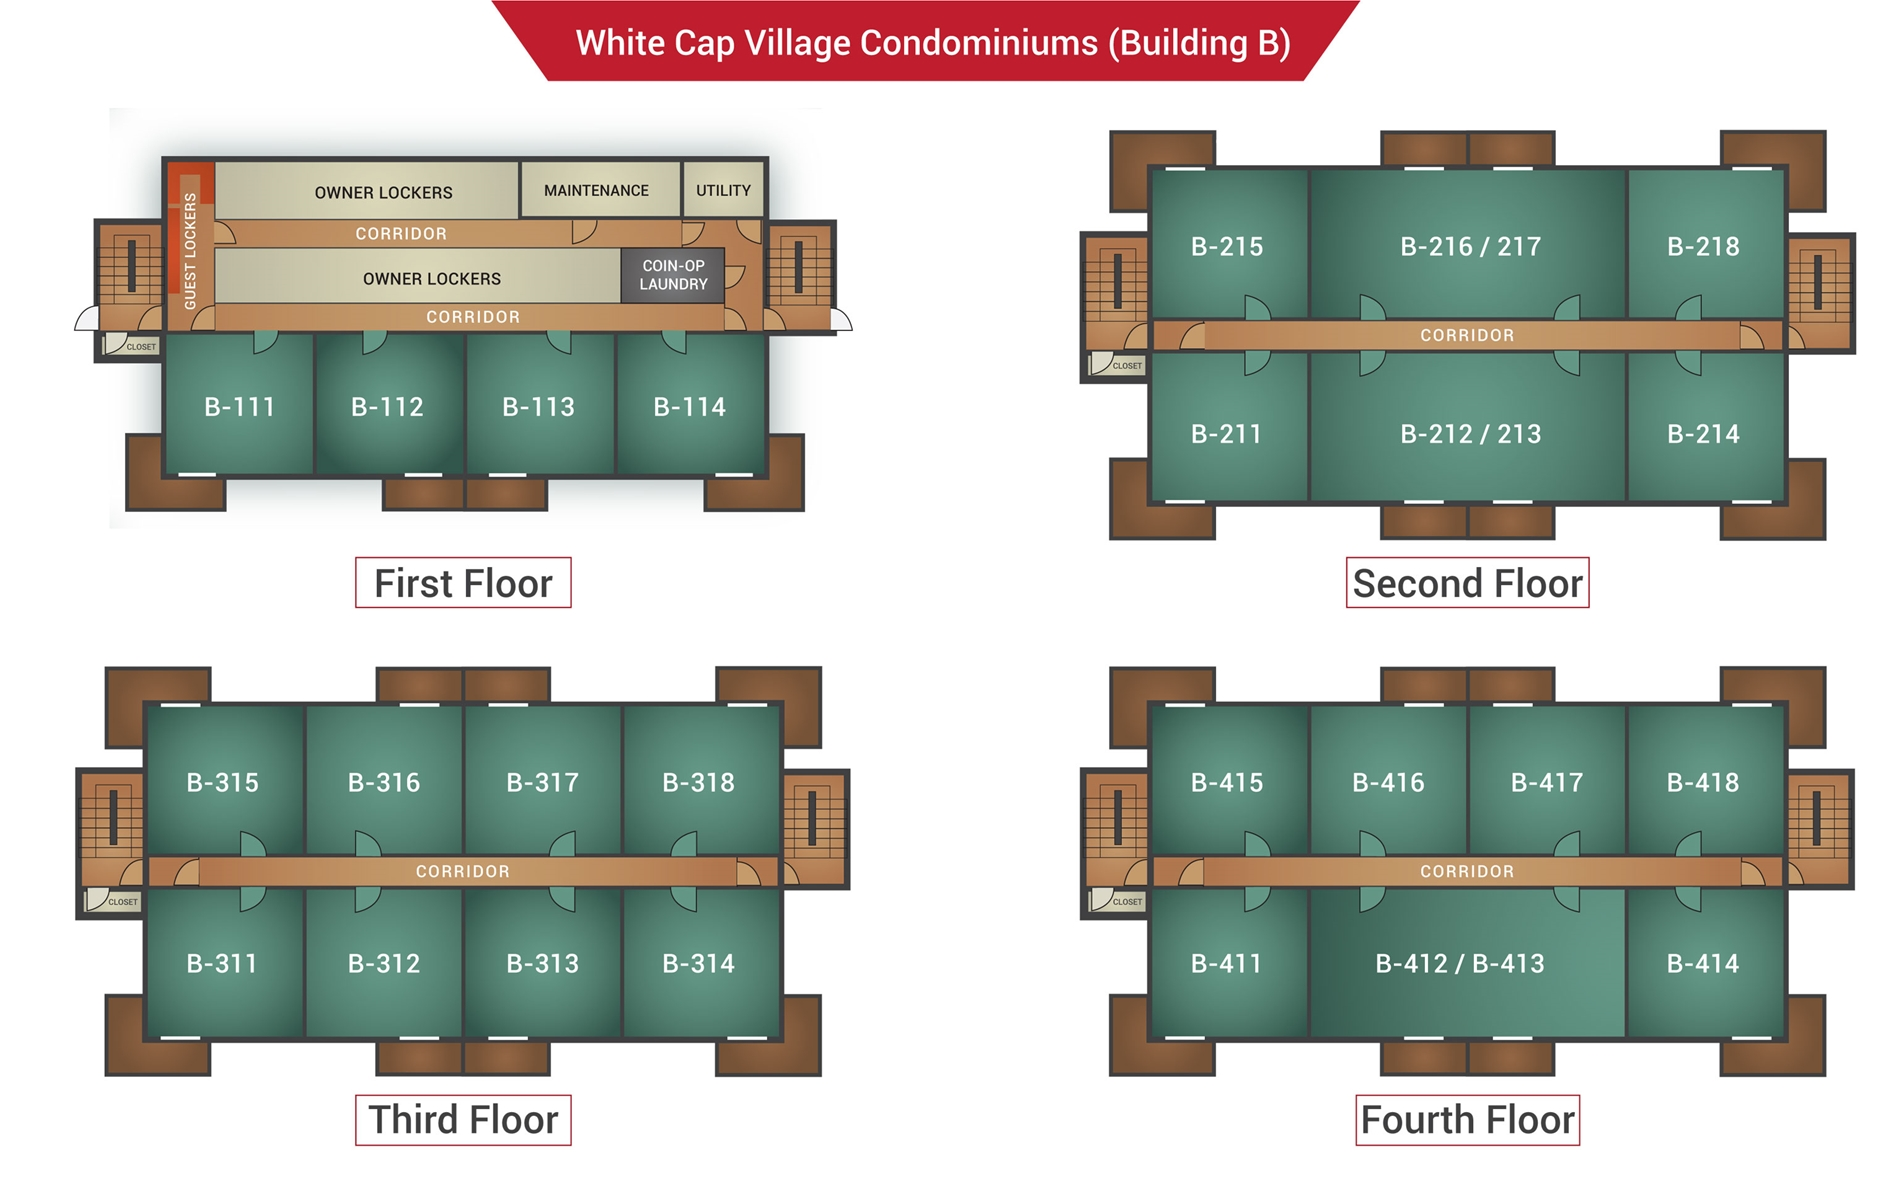 Floor Plan for White Cap B-216/217 - Sunday River Condo